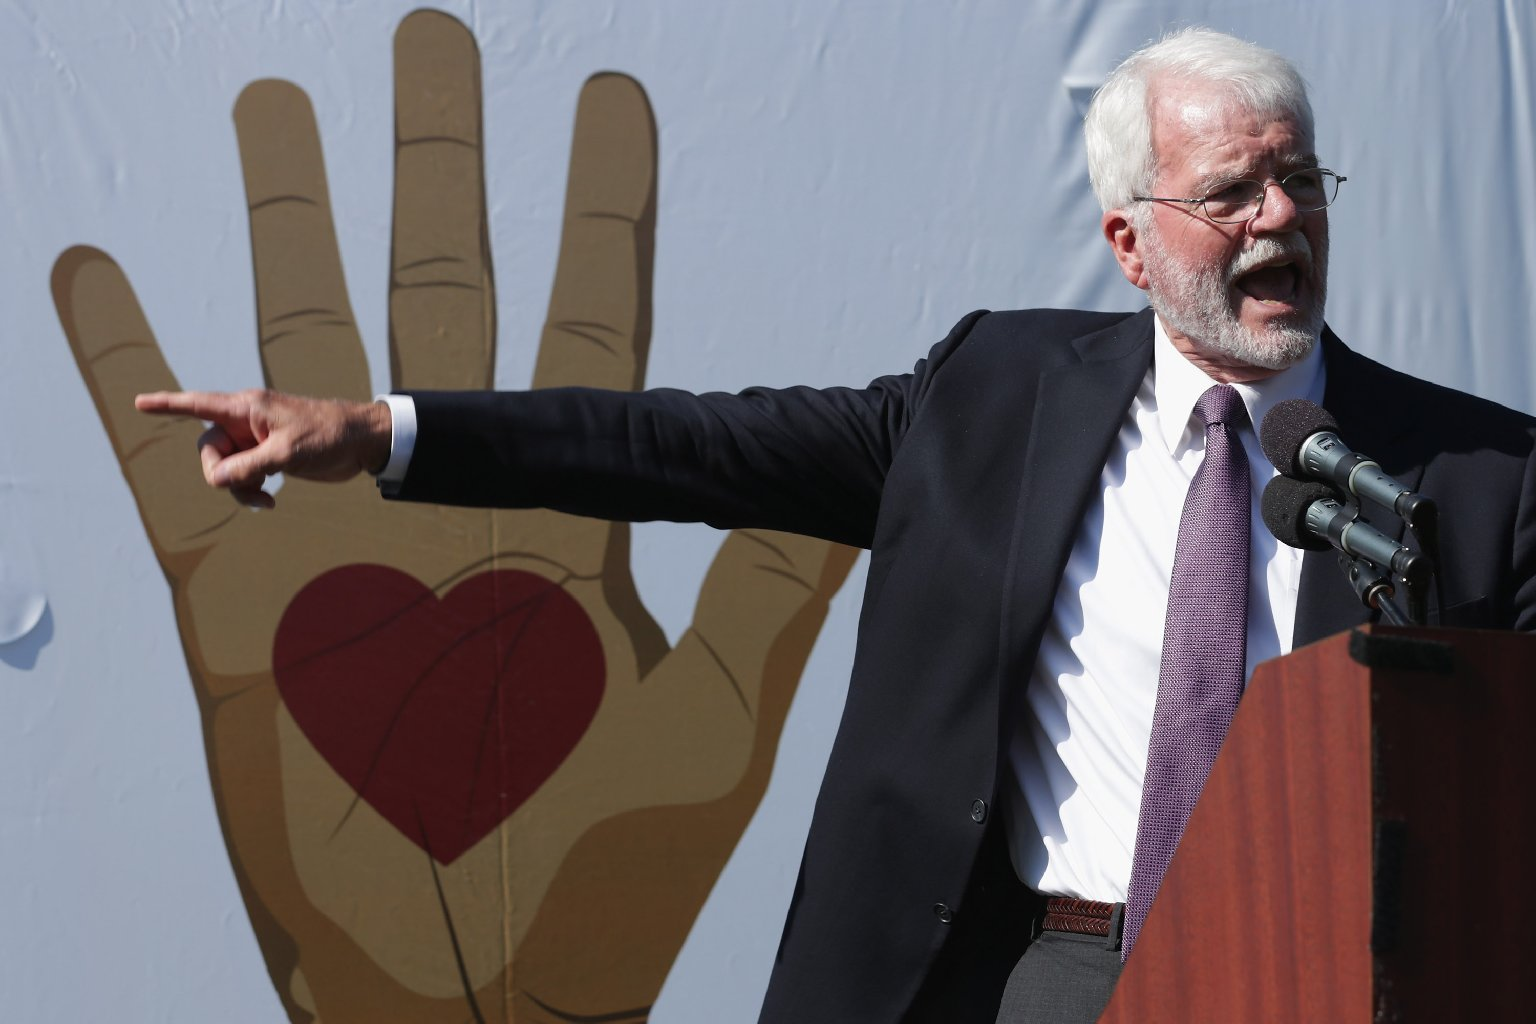 Rep. George Miller, D-Martinez, pictured in 2013. (Chip Somodevilla/Getty Images)